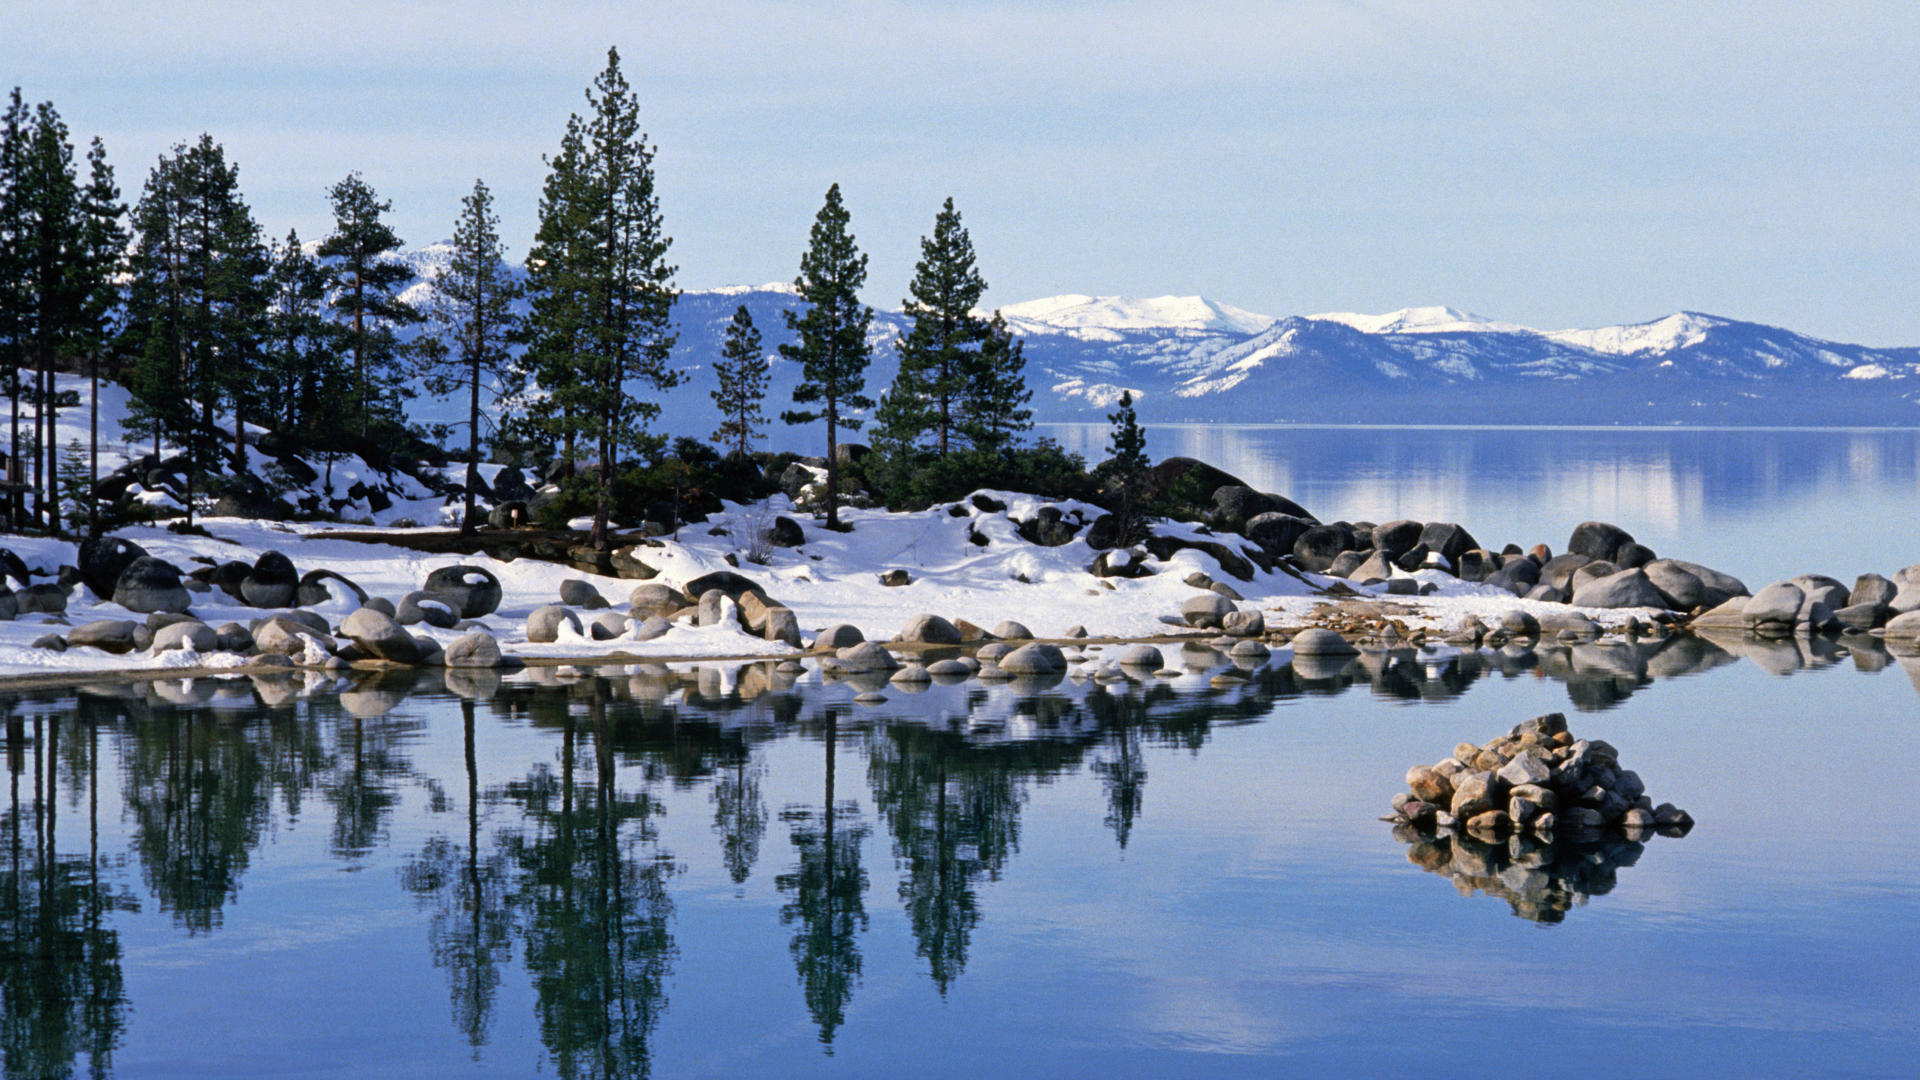 lake tahoe en invierno wallpaper   ForWallpapercom 1920x1080